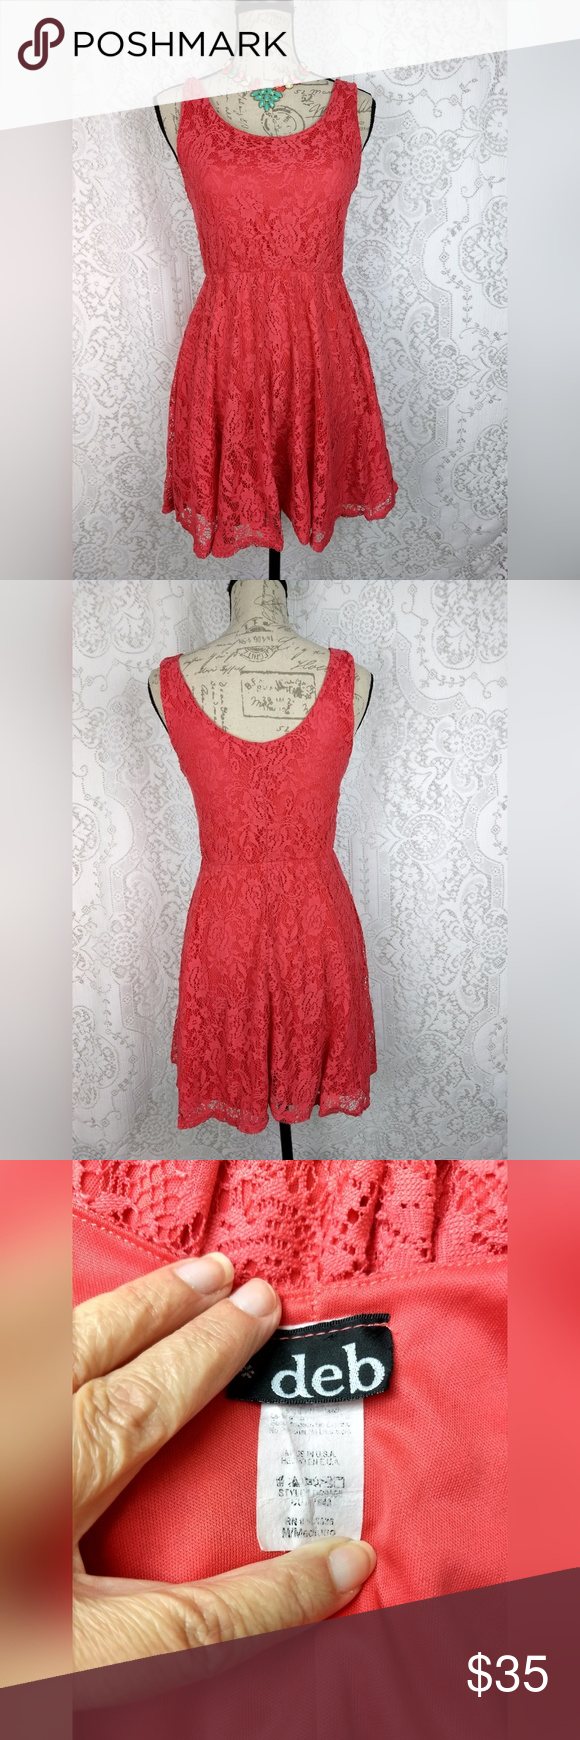 Deb Lace Mini Sundress Dress Size M Deb women's mini dress coral salmon pink crochet lace sleeveless short sundress  size medium  Chest 30 inches Waist 22 inches unstretched elastic Length 31 inches (shoulder to hem) Excellent condition, no rips or stains  *Necklace not included*  From a smoke free home Deb Dresses Mini #shortsundress Deb Lace Mini Sundress Dress Size M Deb women's mini dress coral salmon pink crochet lace sleeveless short sundress  size medium  Chest 30 inches Waist 22 inche #shortsundress